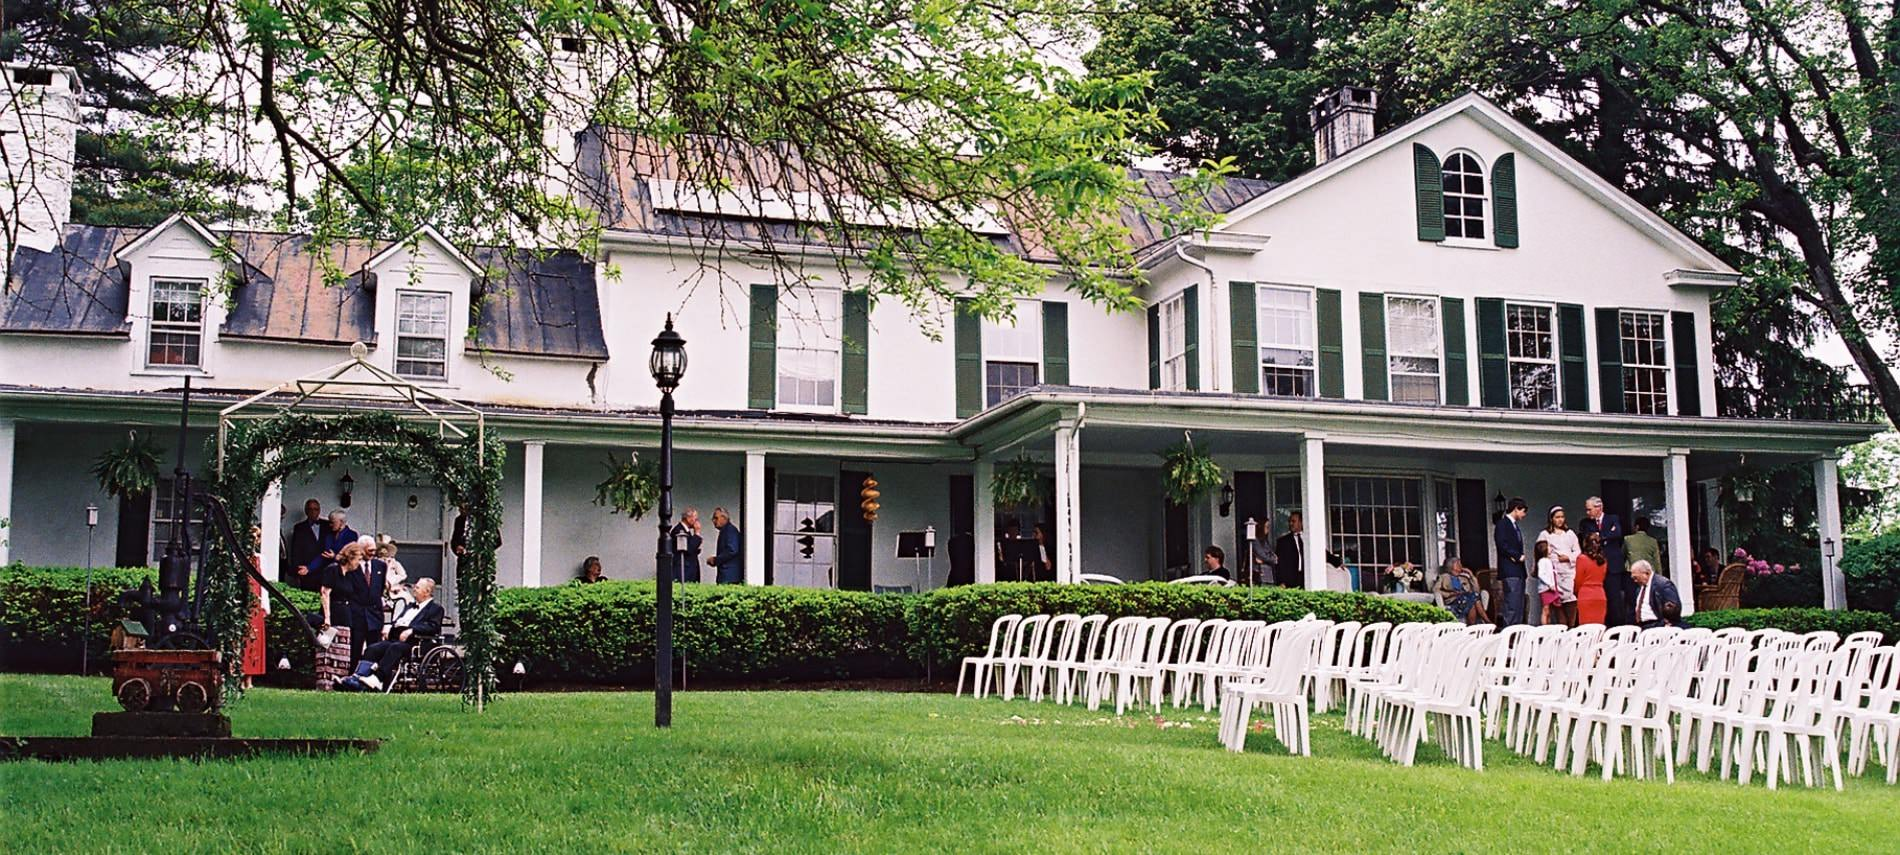 Exterior view of property painted white with dark shutters set up for a wedding with white chairs on the lawn